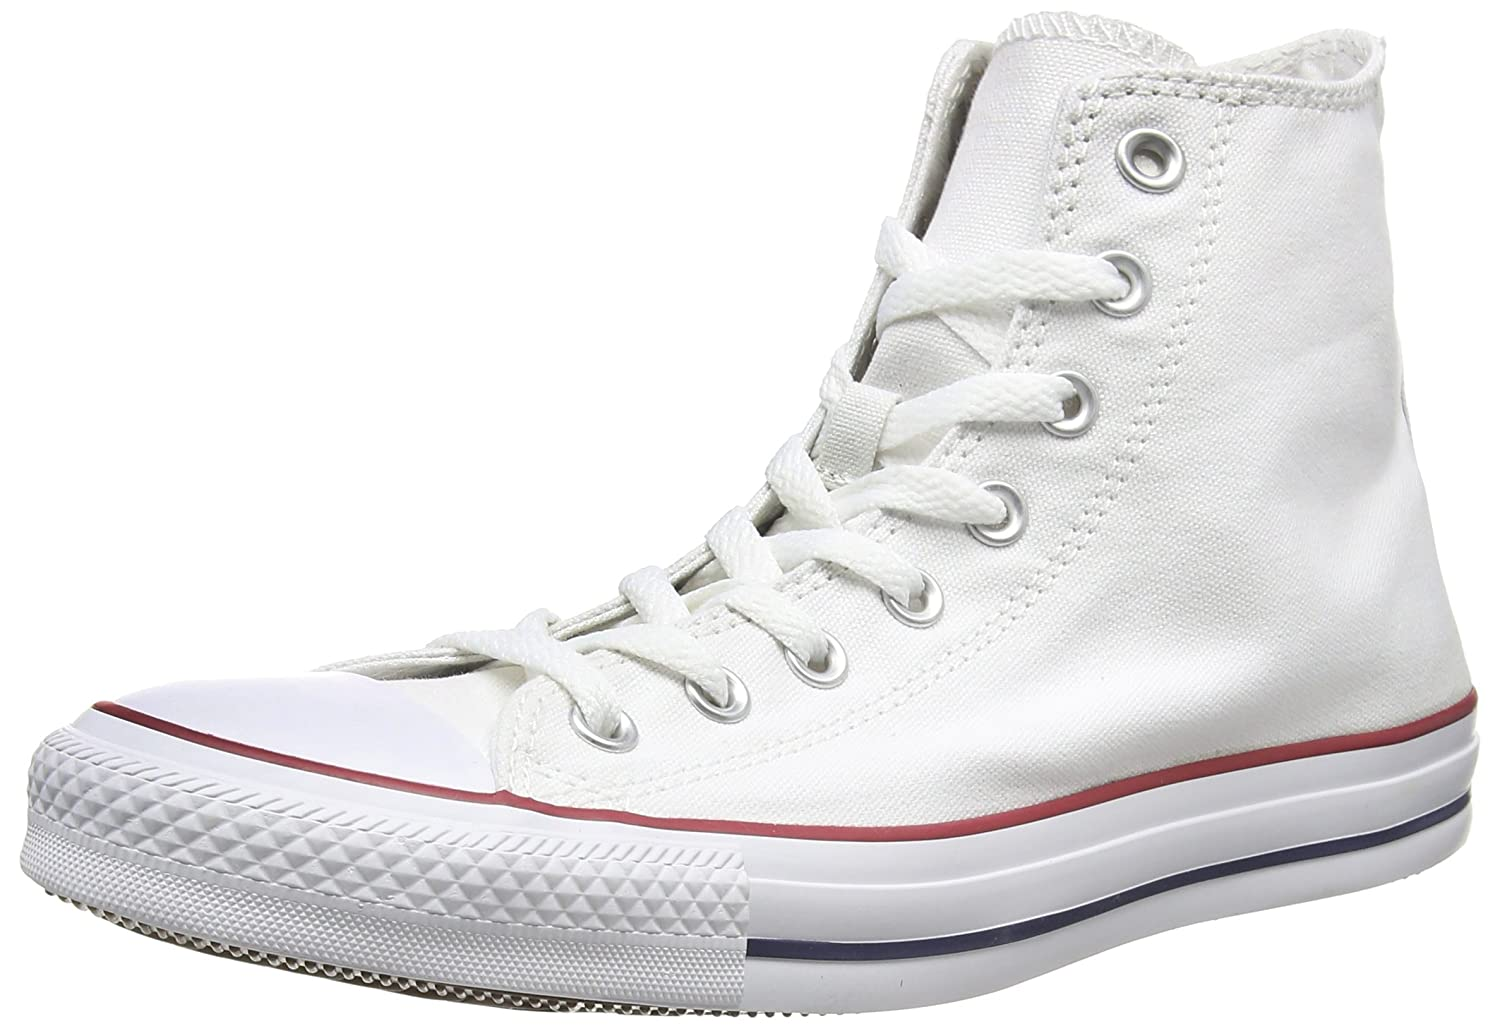 Converse Unisex Chuck Taylor All Star Hi Top Sneaker B01M08KN2J 7.5 B(M) US Women / 5.5 D(M) US Men|Optical White